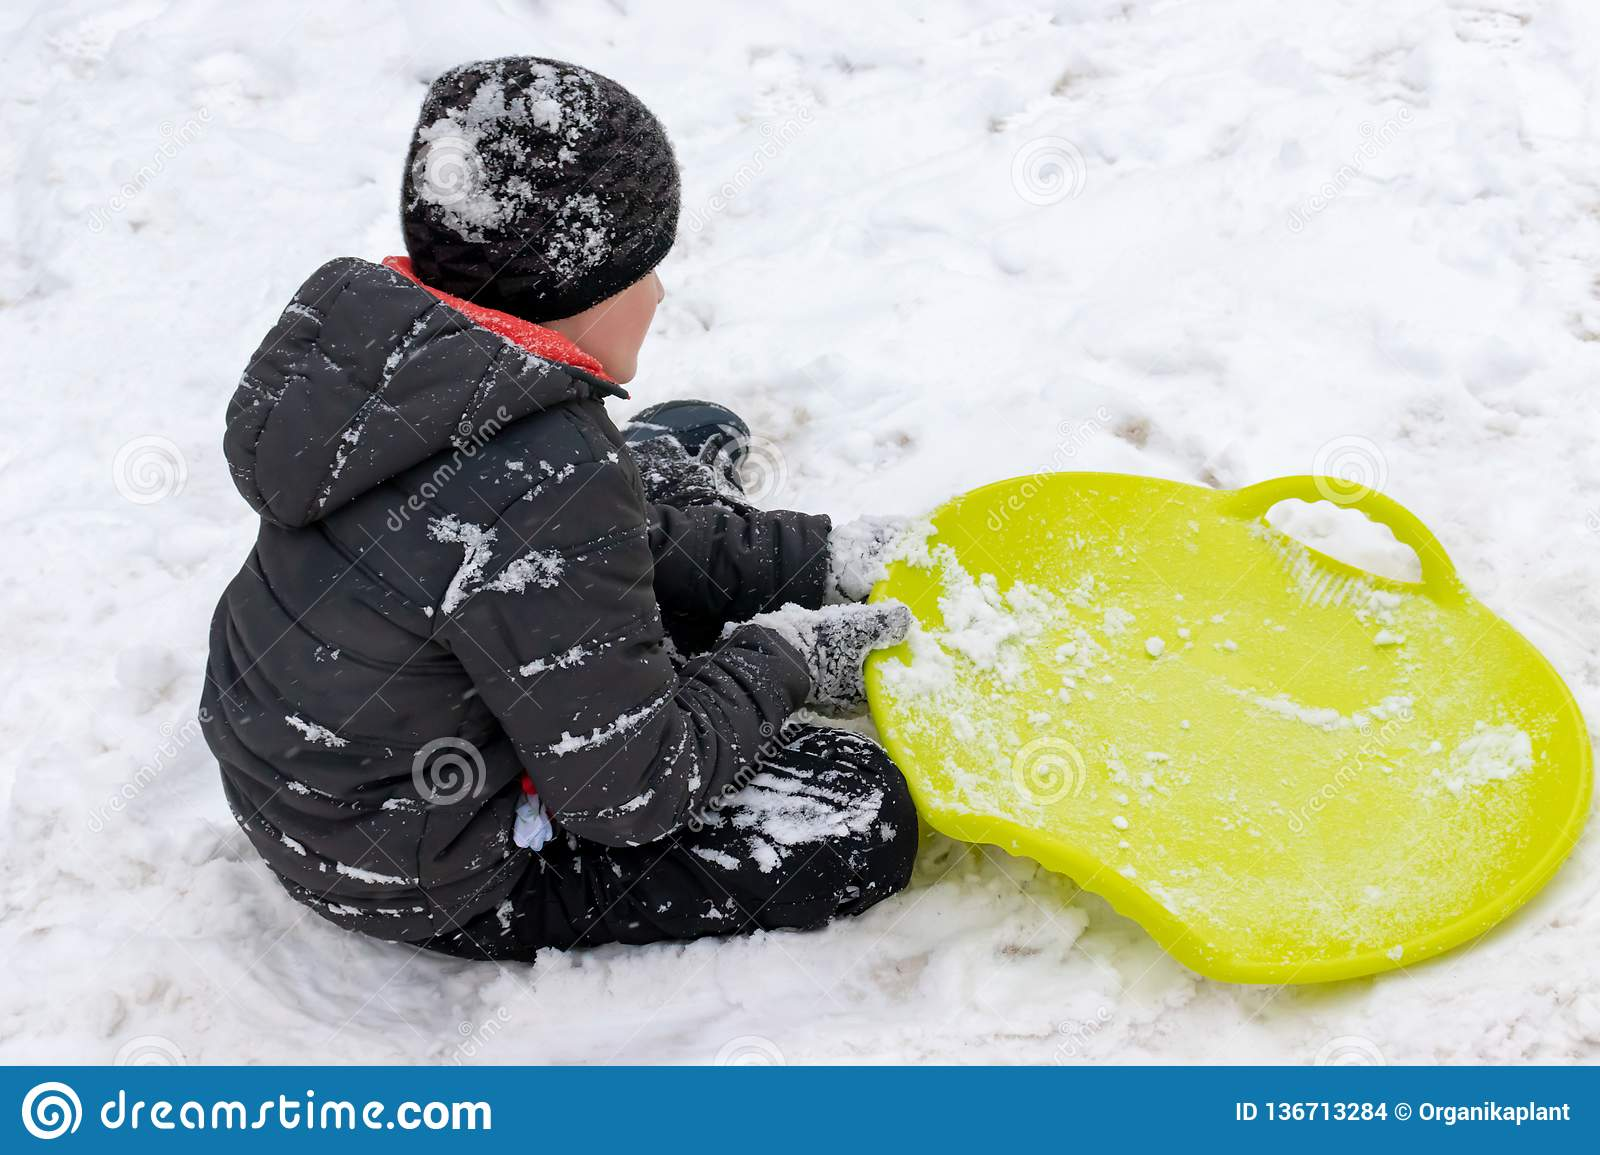 A boy of seven years old sitting on the snow and a green plastic saucer sled lying near him. Concept of winter activities,